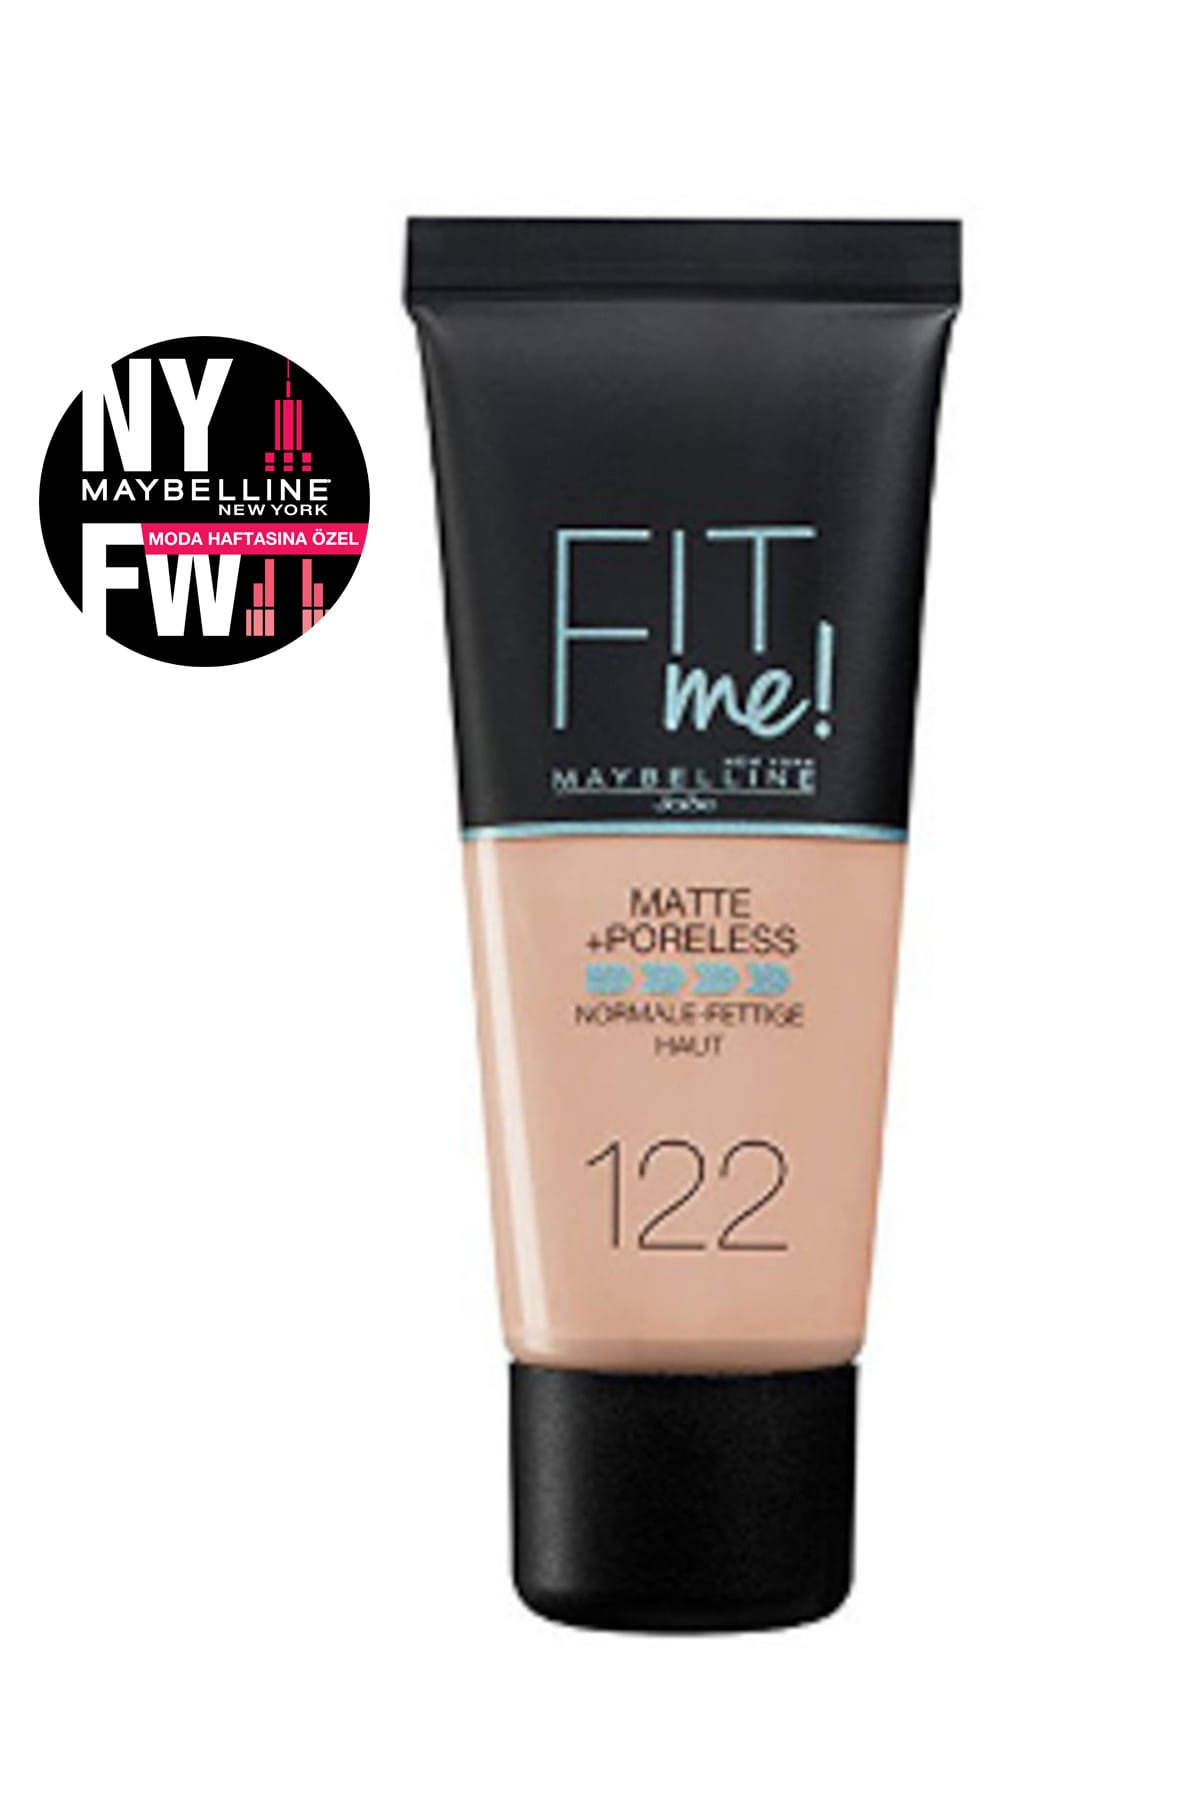 Maybelline New York Fondöten – Fit Me Matte + Poreless Foundation 122 Creamy Beige 30 Ml 3600531369453 – 40.57 TL